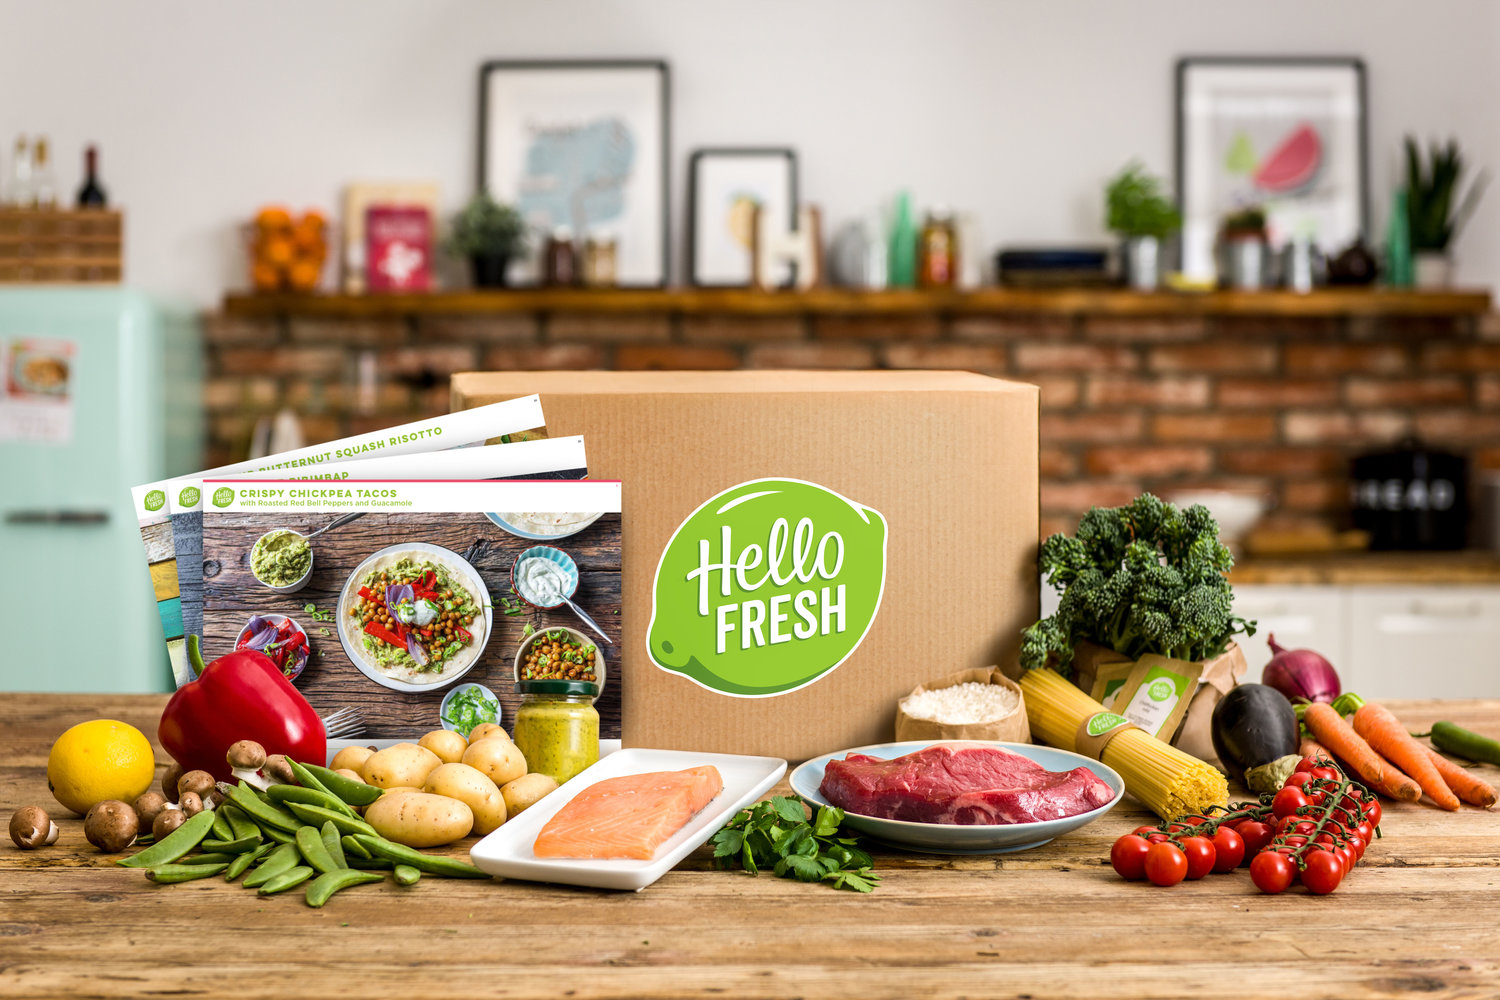 hellofresh-meal-kit-box